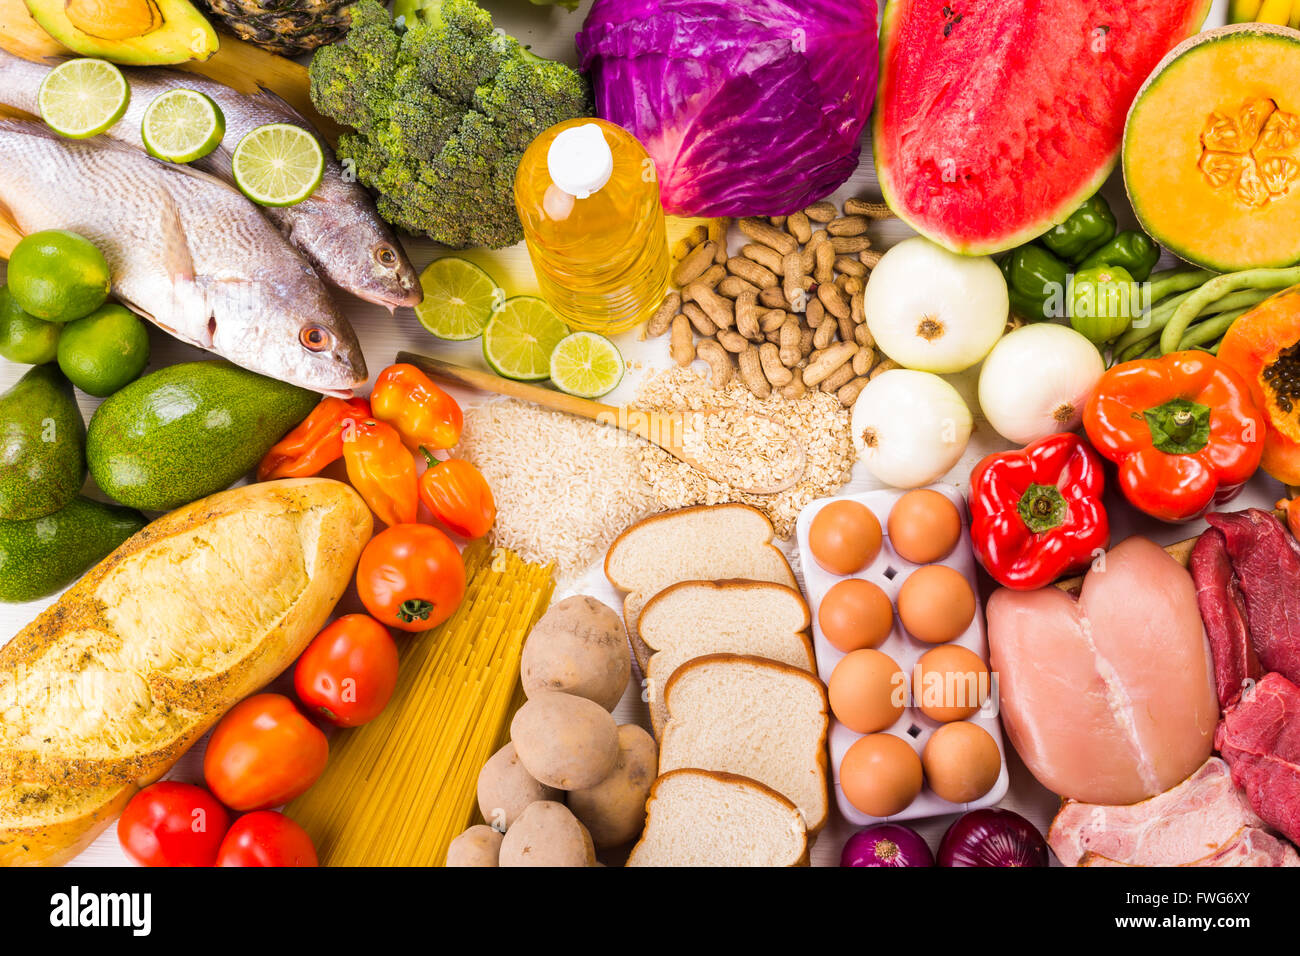 Group of healthy food, the shoot includes protein, carbohydrates, good fats, fruits and vegetables. - Stock Image